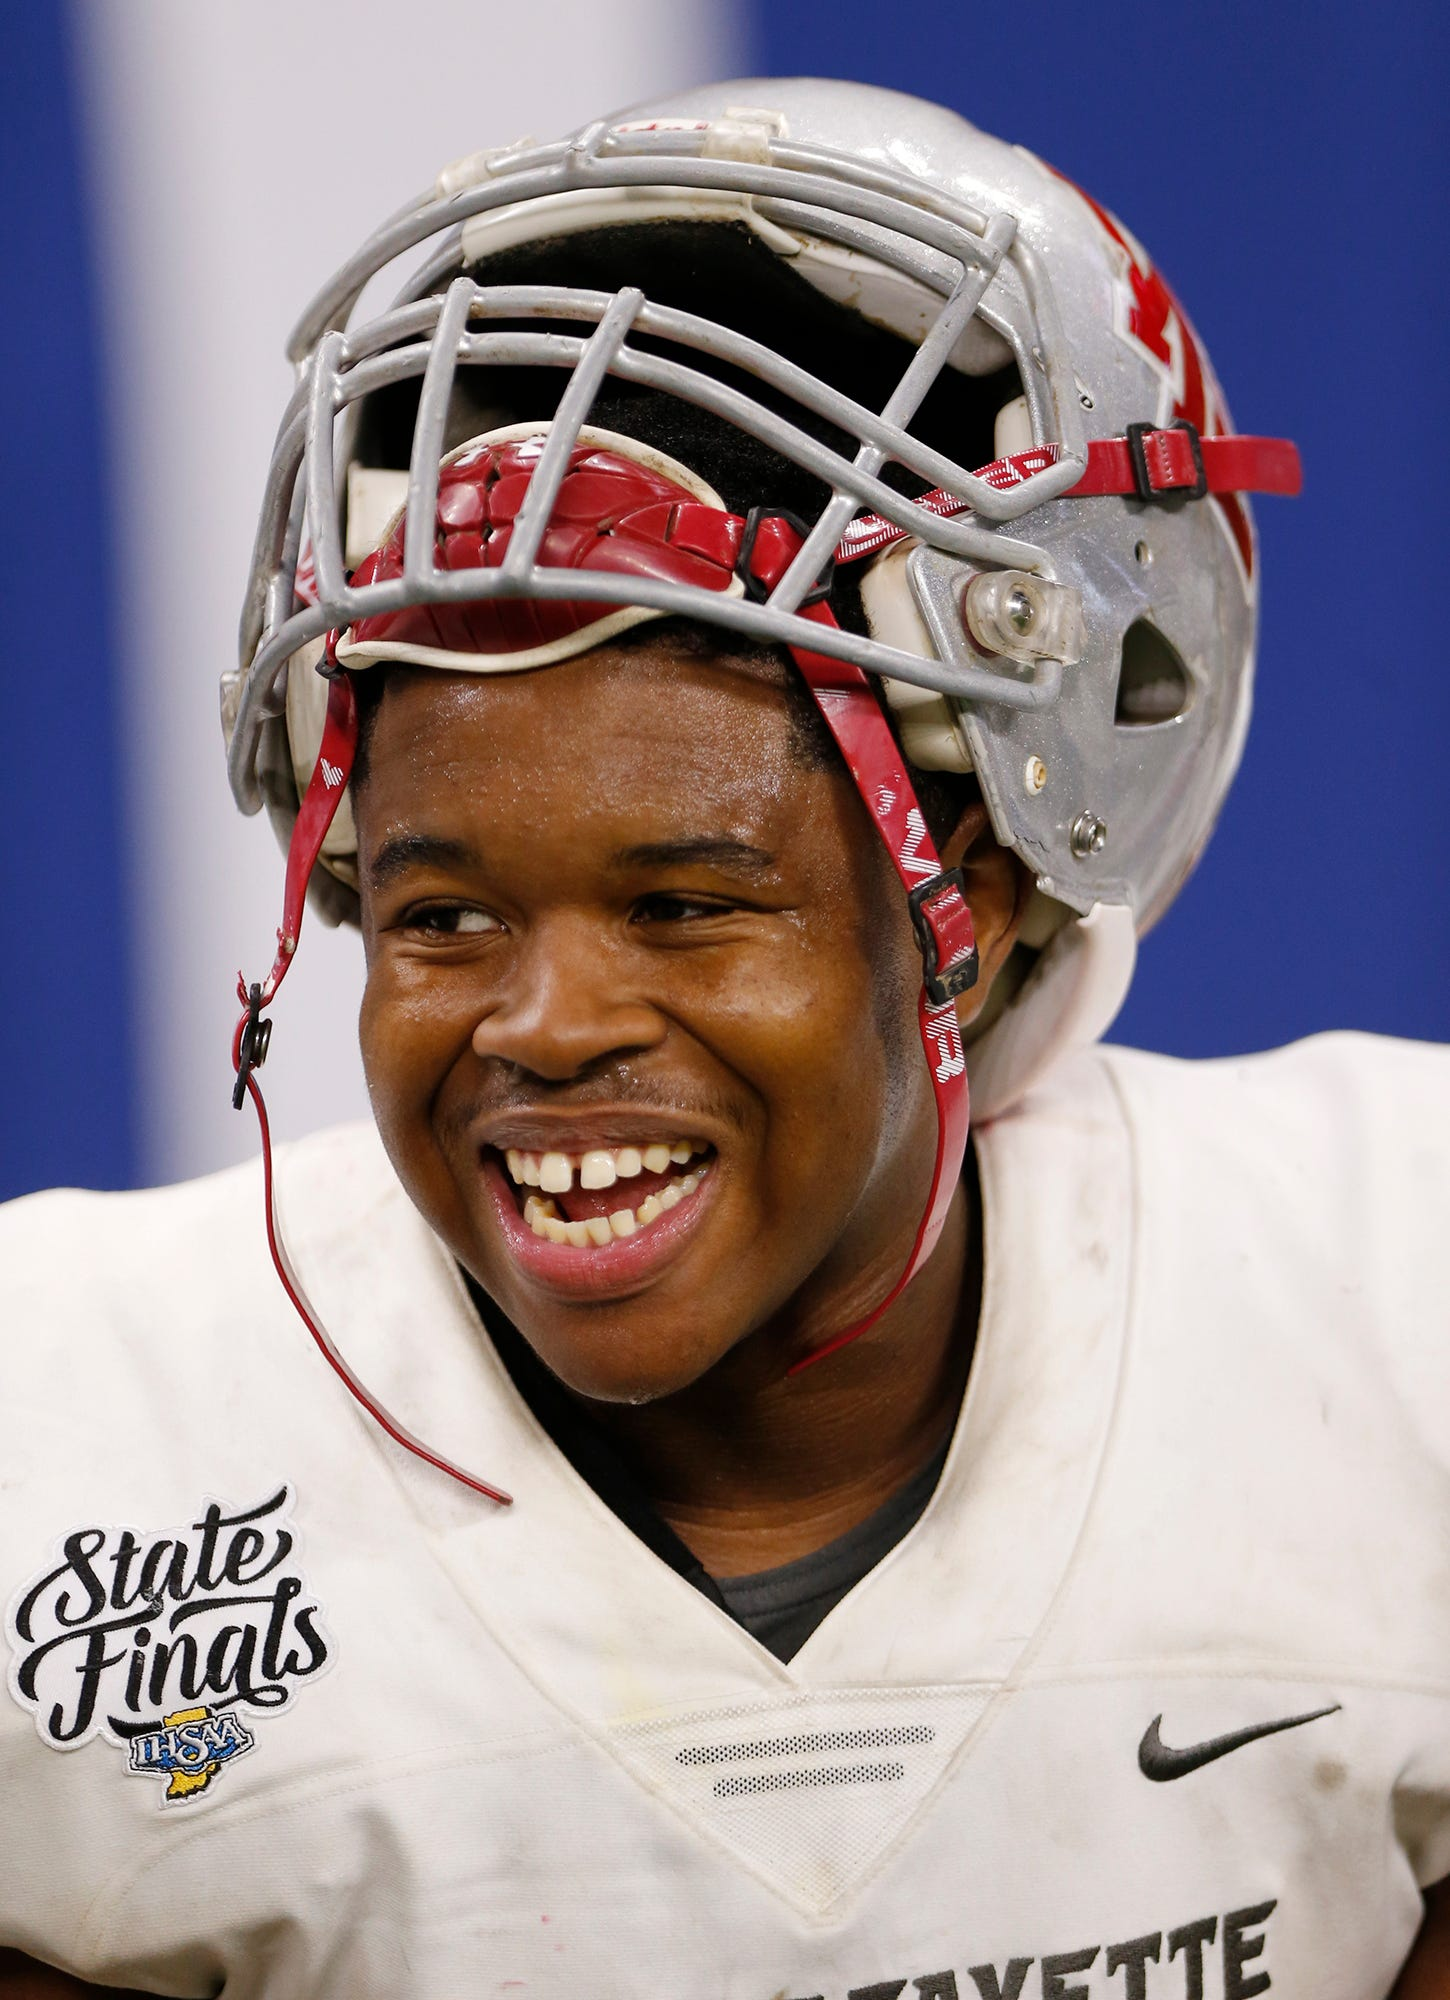 Lamont Johnson of West Lafayette smiles on the sidelines as the Red Devils battle Evansville Memorial in the fourth quarter in the Class 3A State Championship Saturday, November 24, 2018, at Lucas Oil Stadium in Indianapolis. West Lafayette defeated Evansville Memorial 47-42 to claim the Class 3A state title.